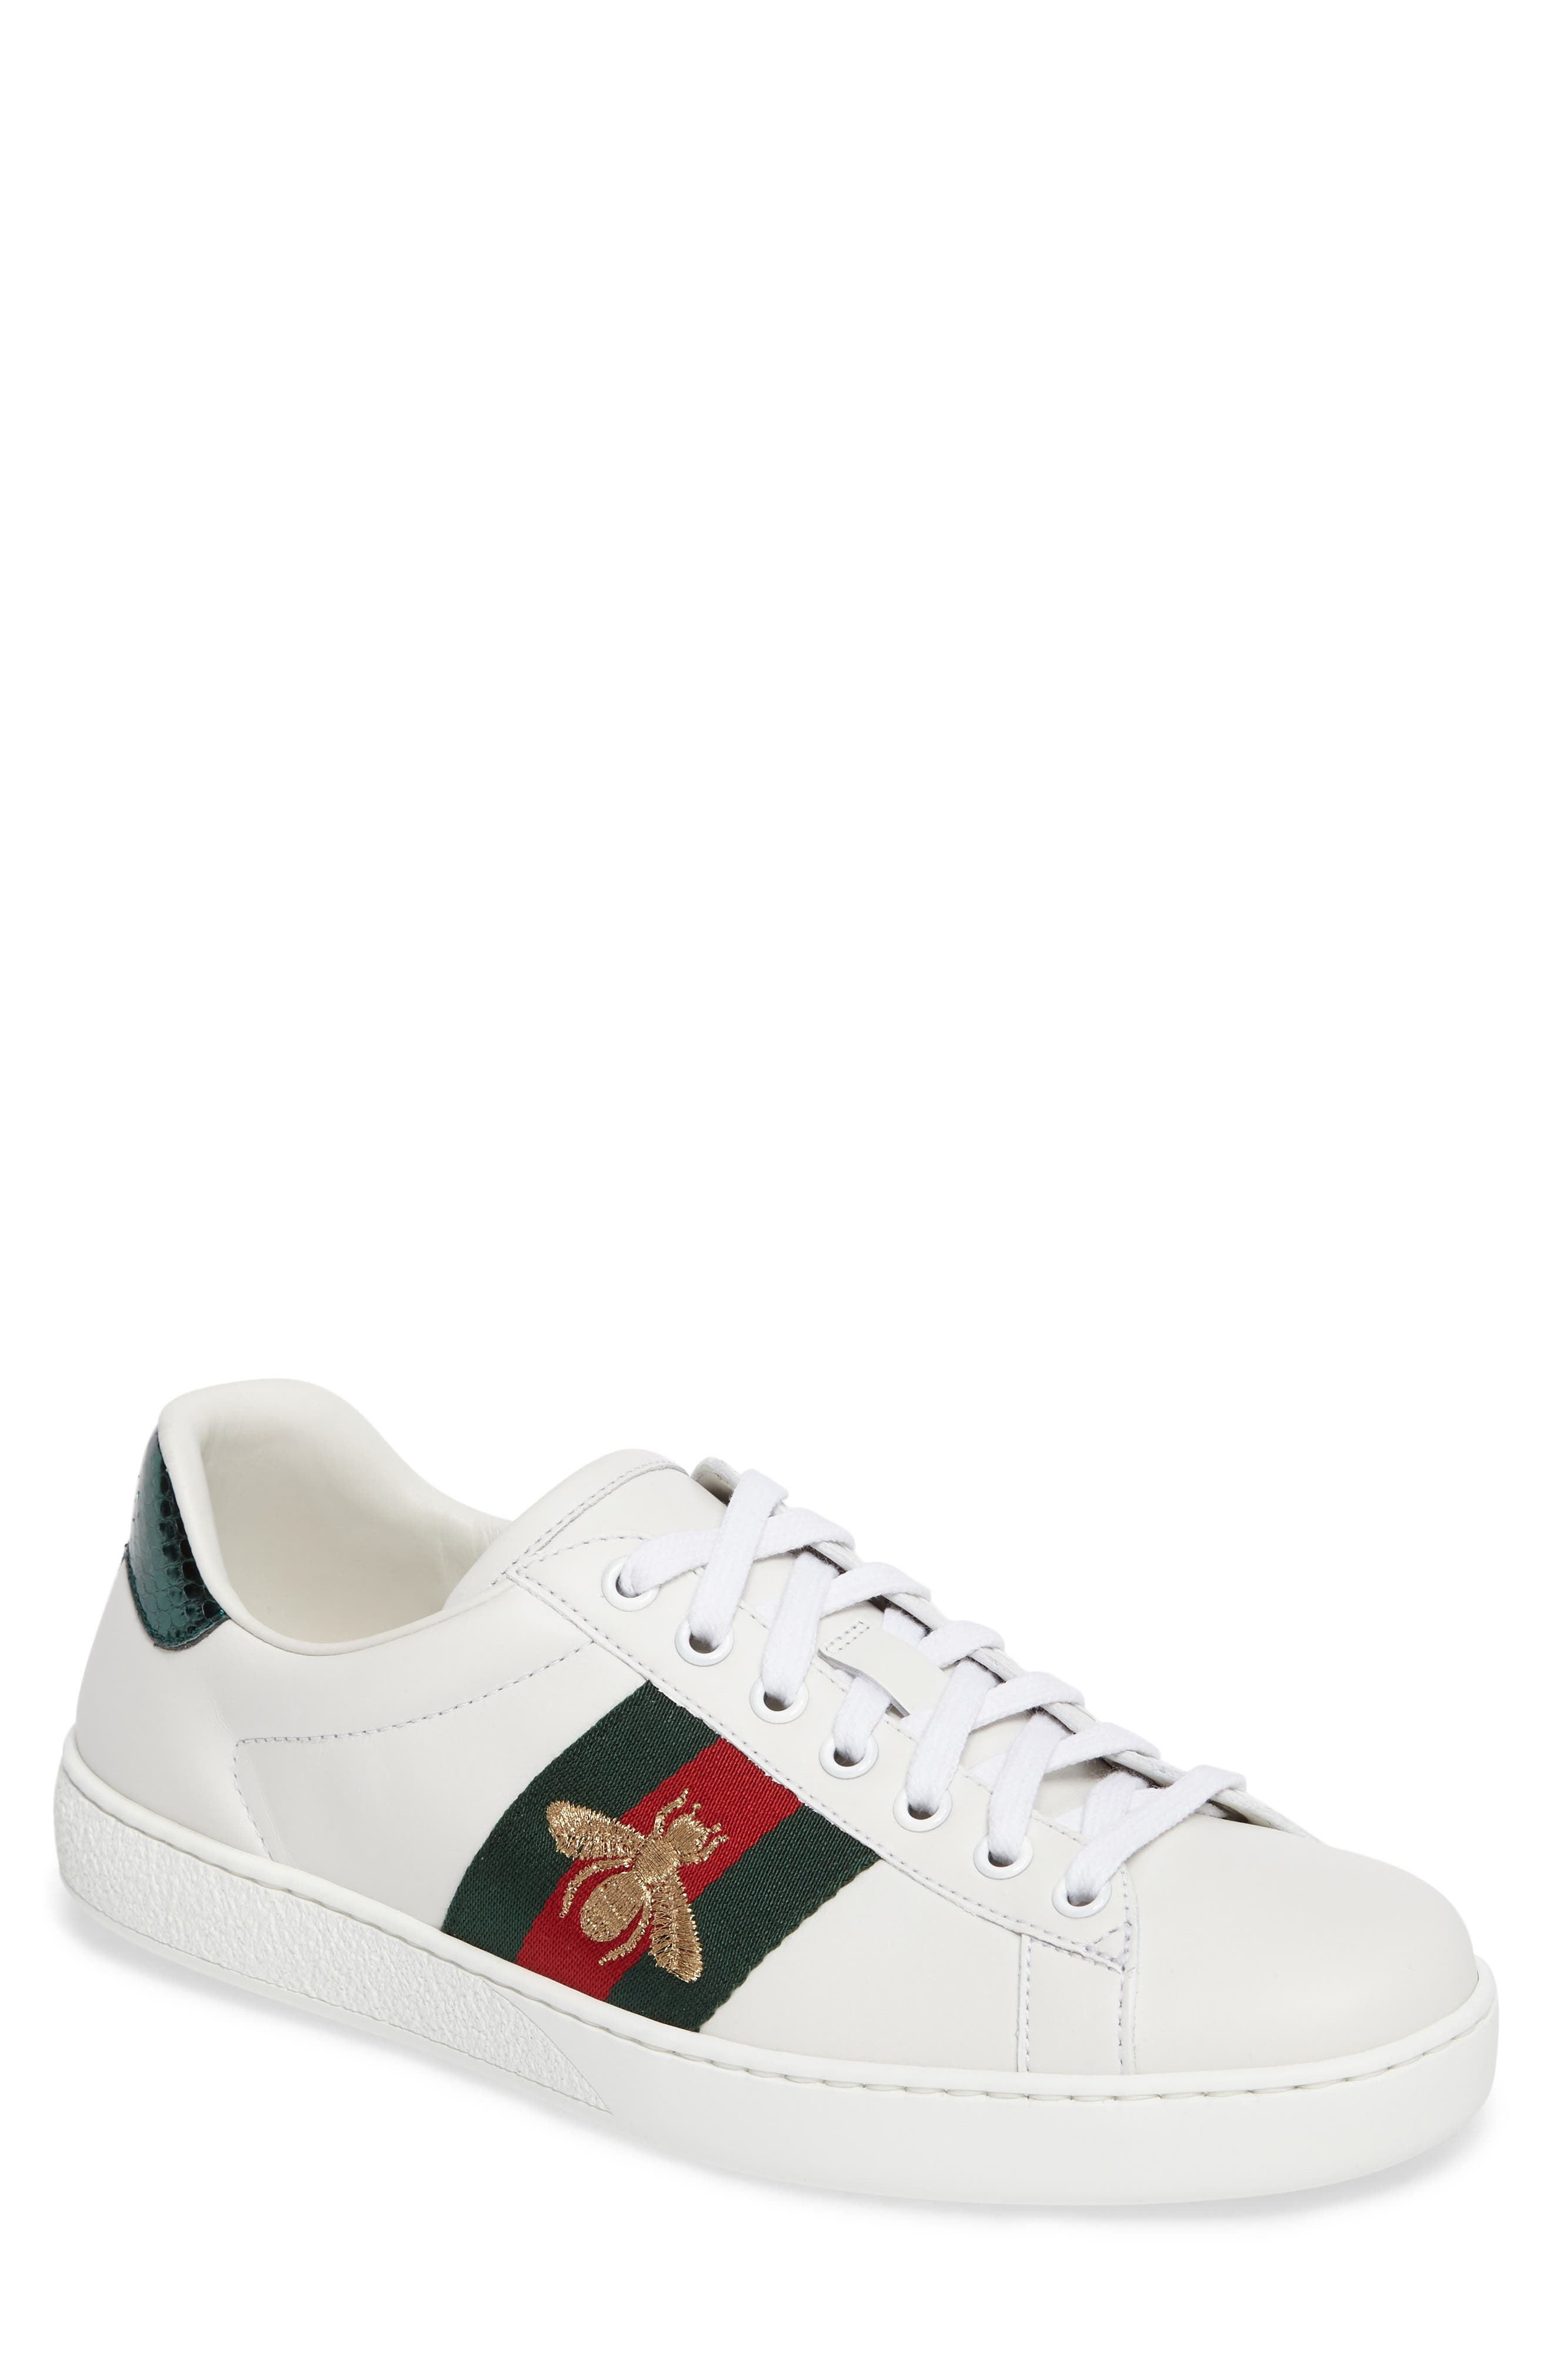 price of gucci slippers